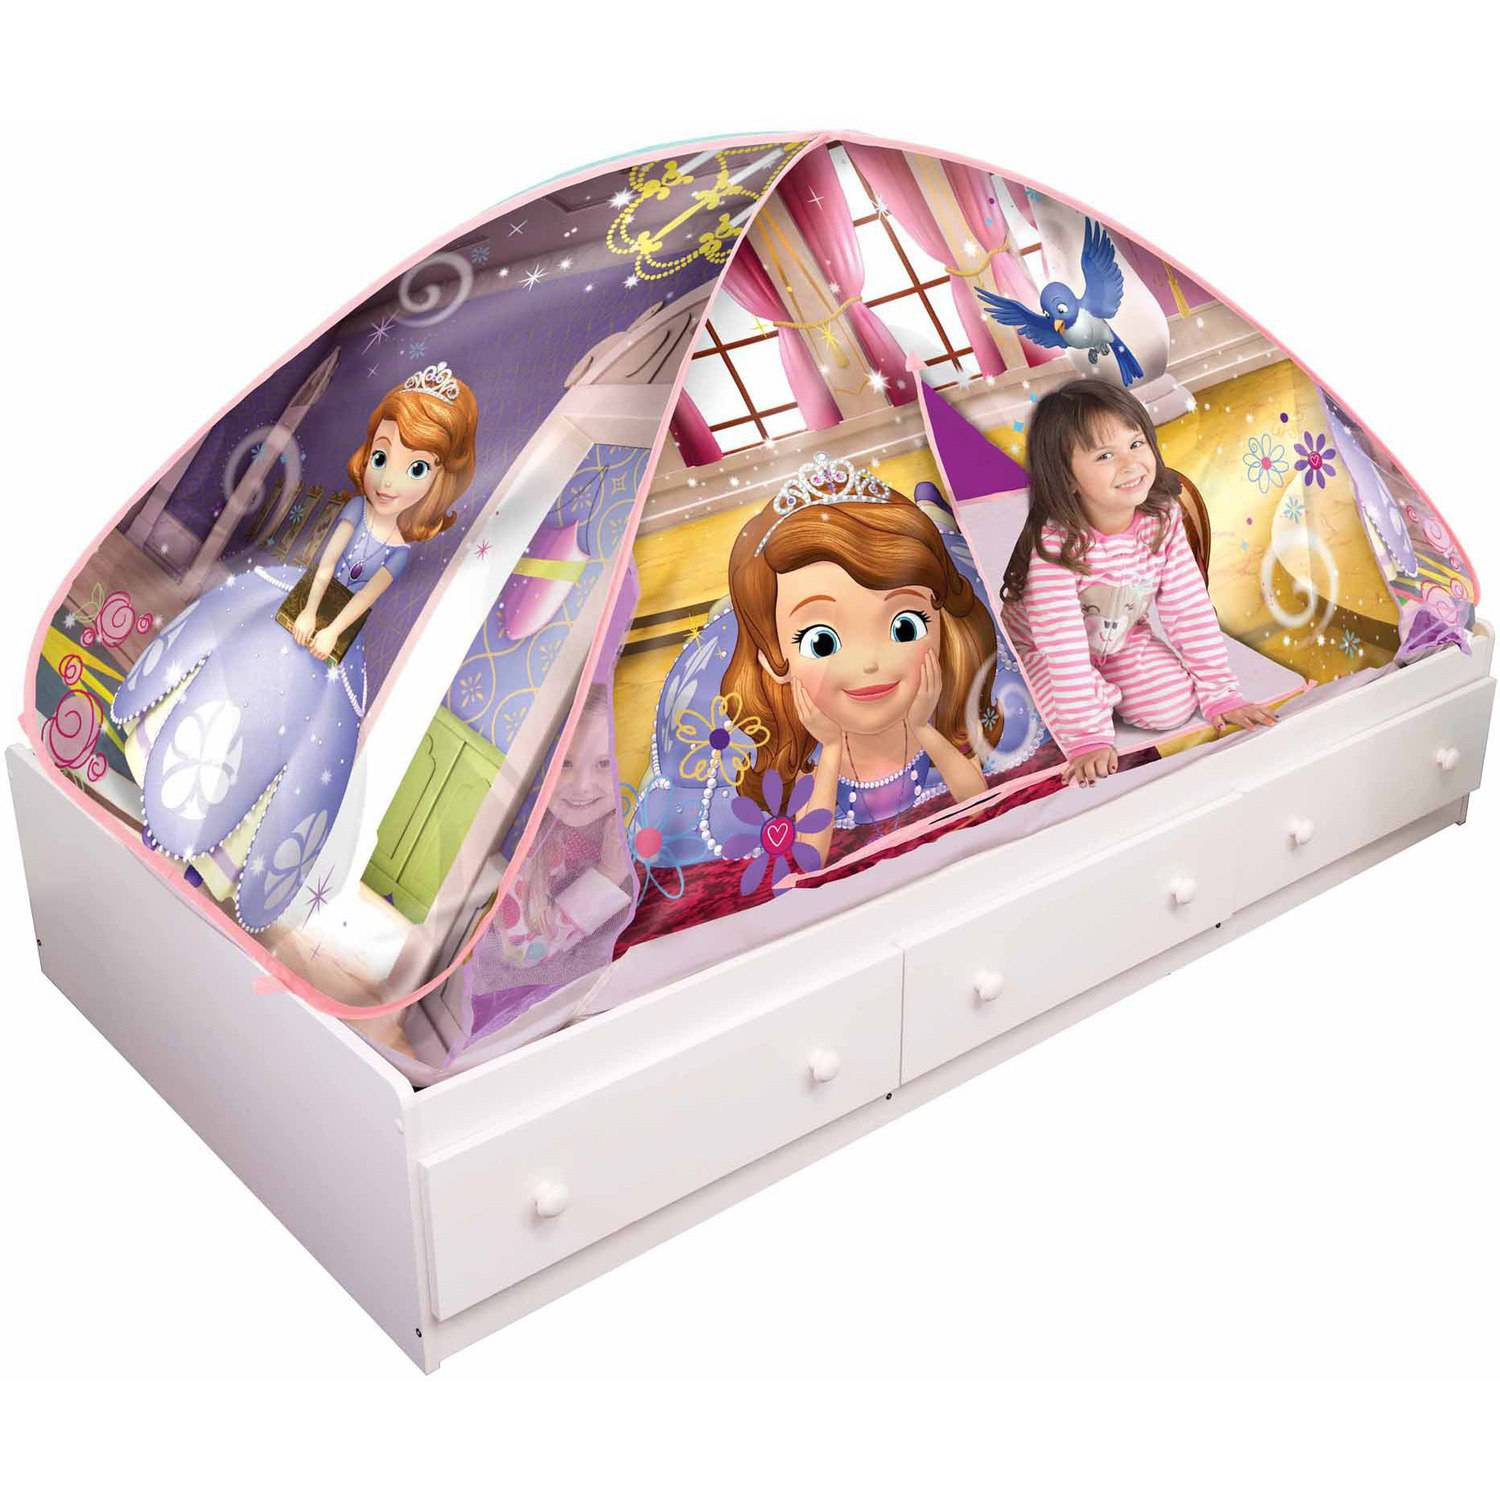 sc 1 st  Walmart.com & Playhut Disney Sofia the First 2-in-1 Tent - Walmart.com